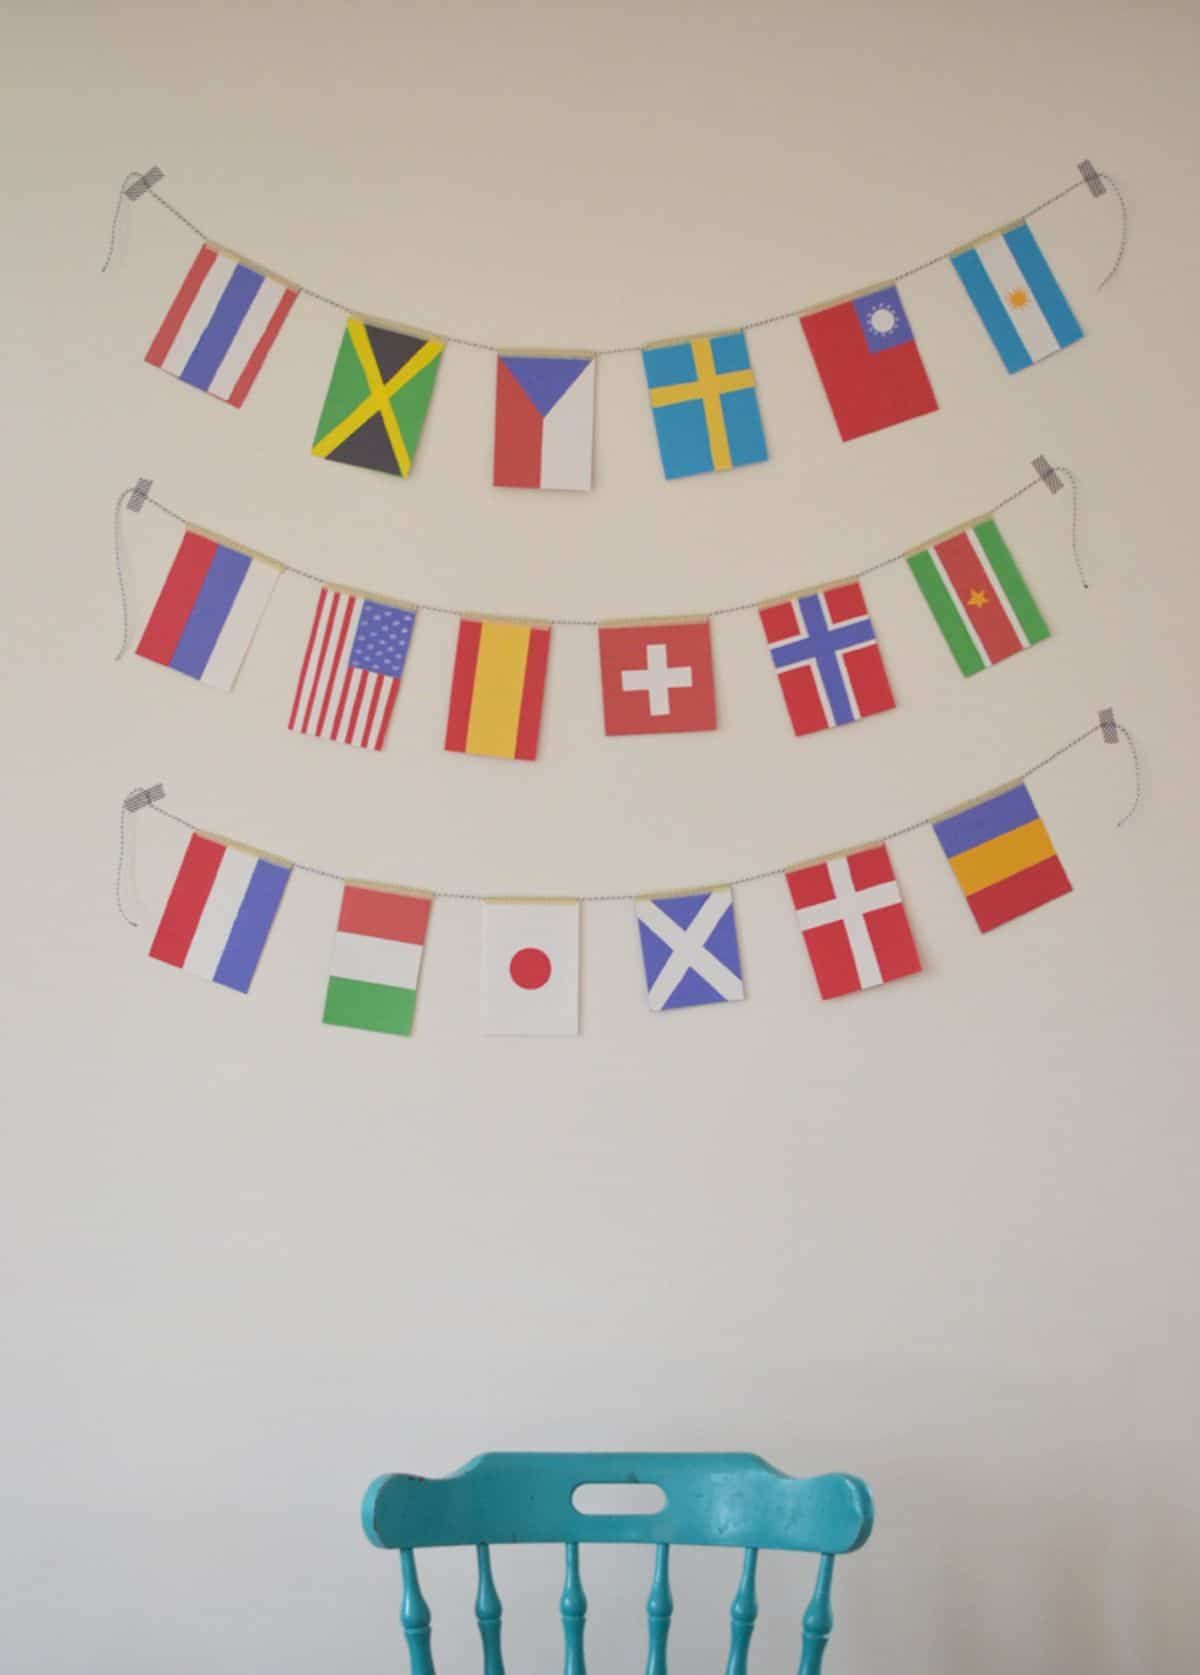 3 garlands of world flags hang on a wall above a blue chair